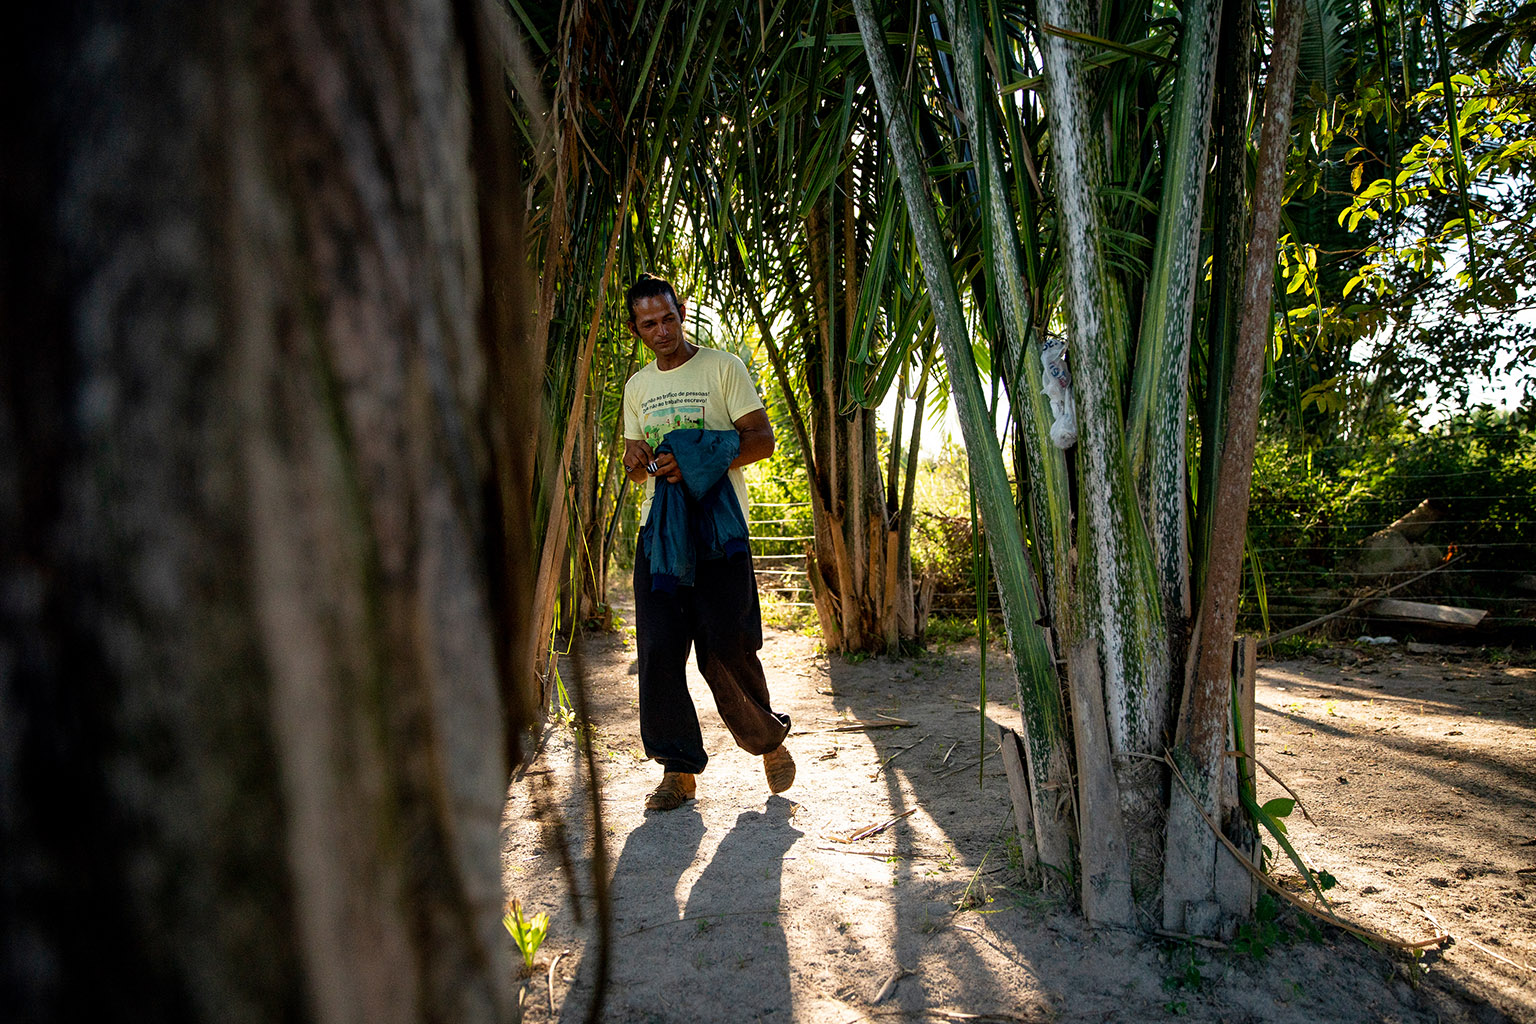 Fernando Araújo walks through the site of a 2017 massacre of rural workers in Pau D'Arco, Brazil on Sunday, June 9, 2019. Fernando survived after hiding in the brush while ten other workers were killed.